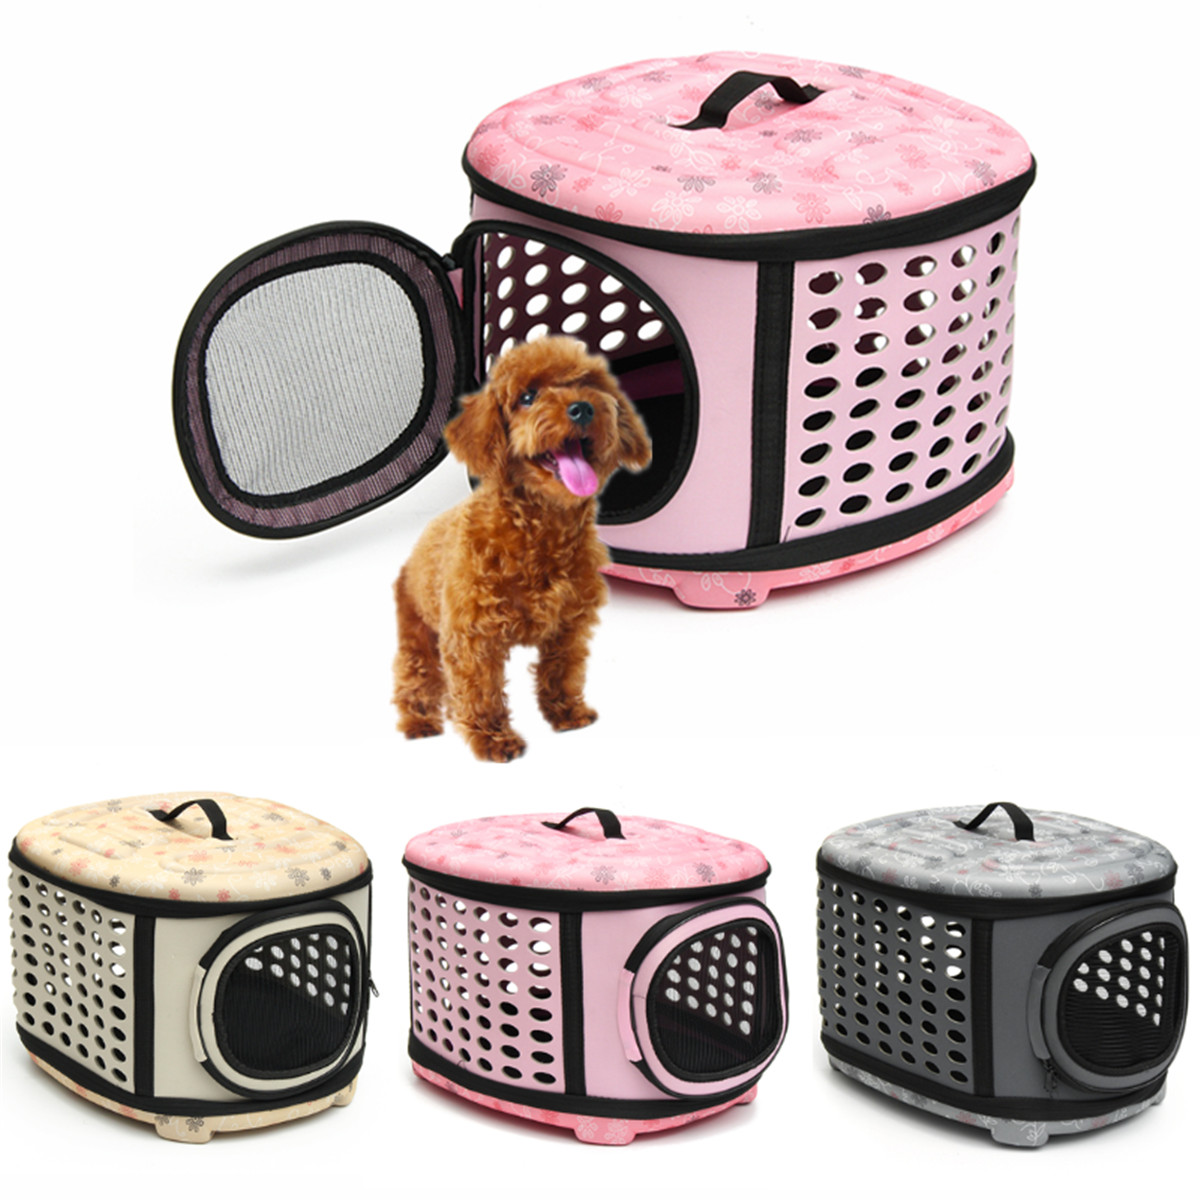 Pet Dog Cat Puppy Mesh Cage Travel Tote Carrier Bag Sling Backpack For Hiking Travel Outdoor Size:M